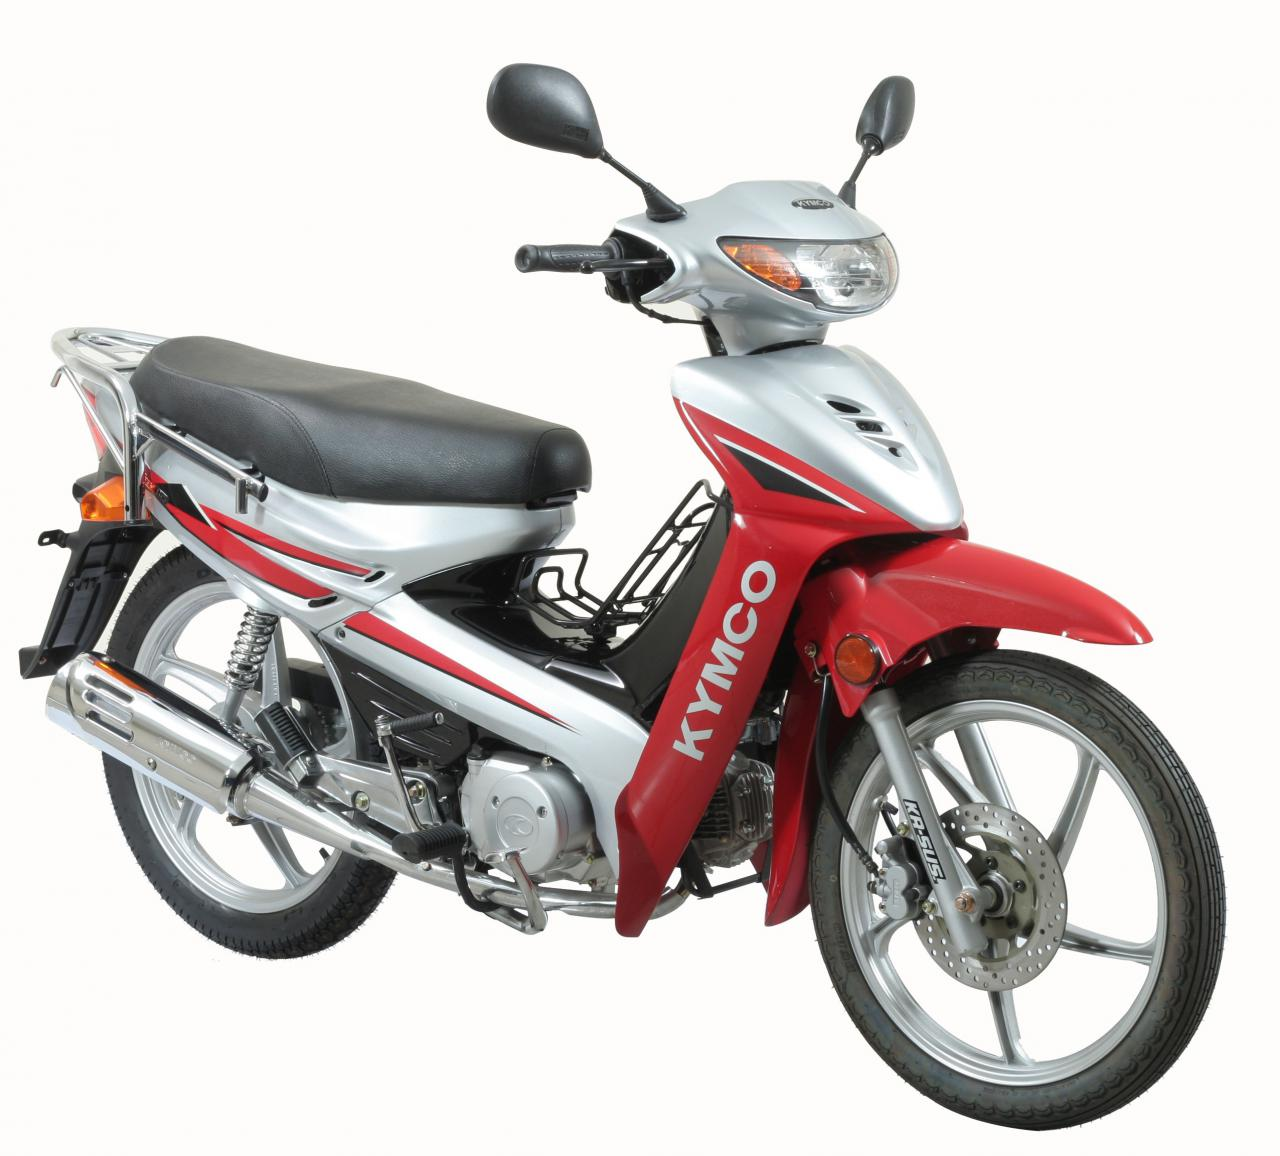 Kymco Heroism 150 2002 wallpapers #139194